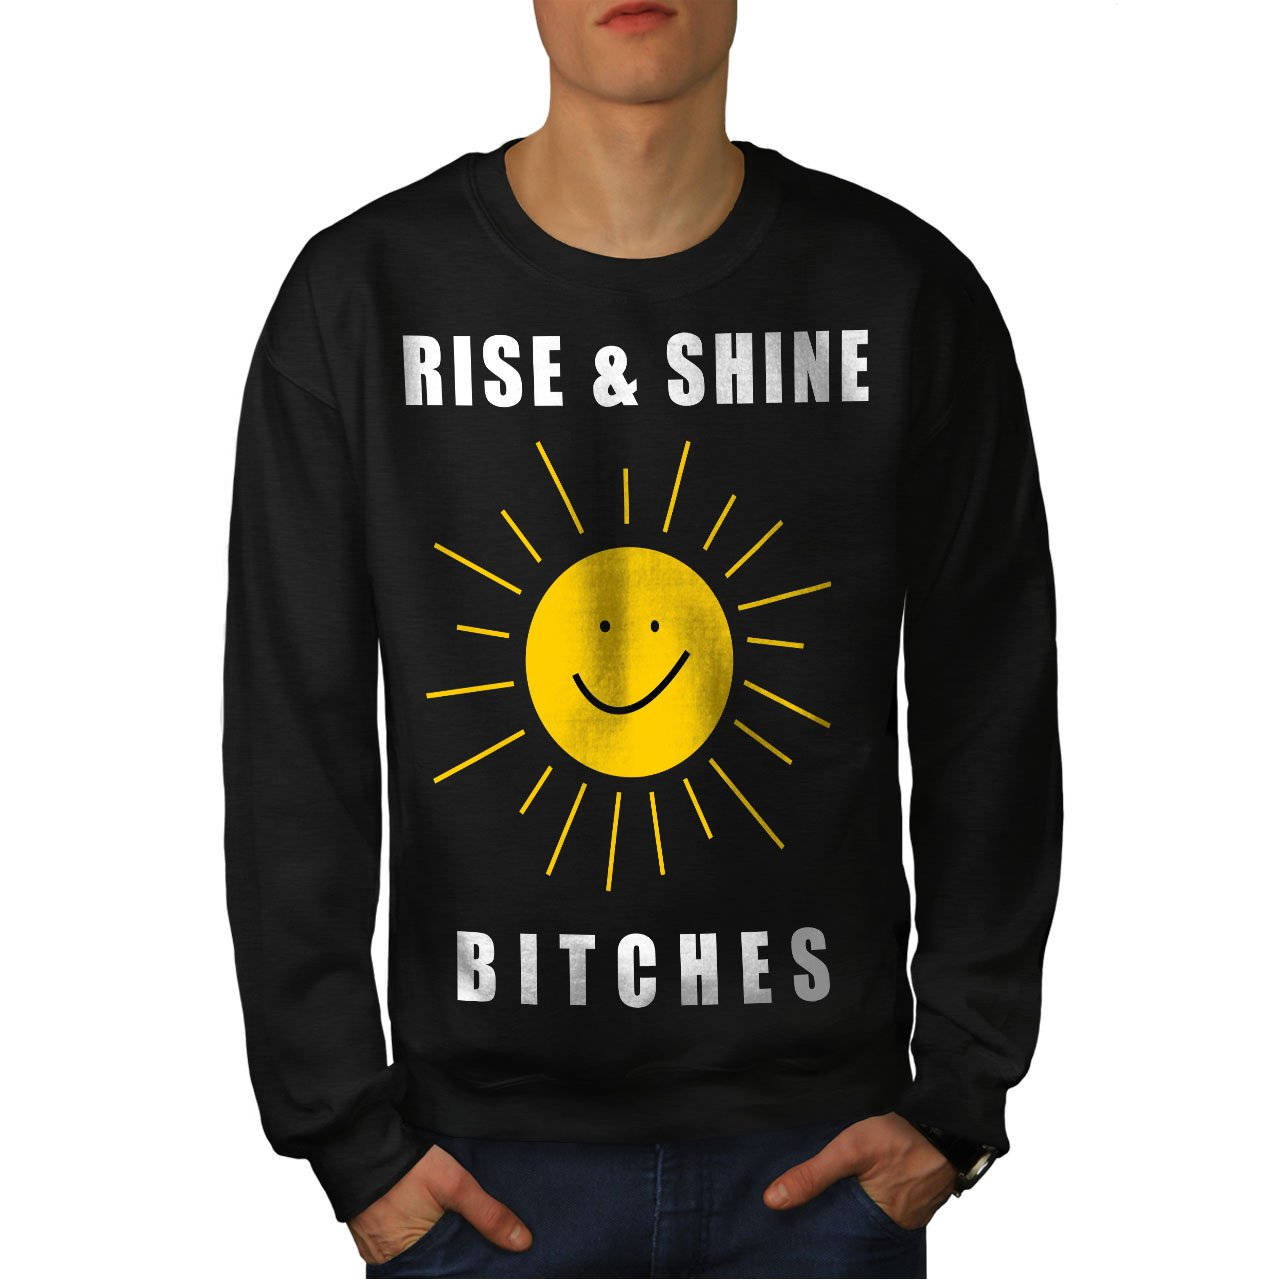 Funny Slogan Casual Jumper wellcoda Rise and Shine Mens Sweatshirt